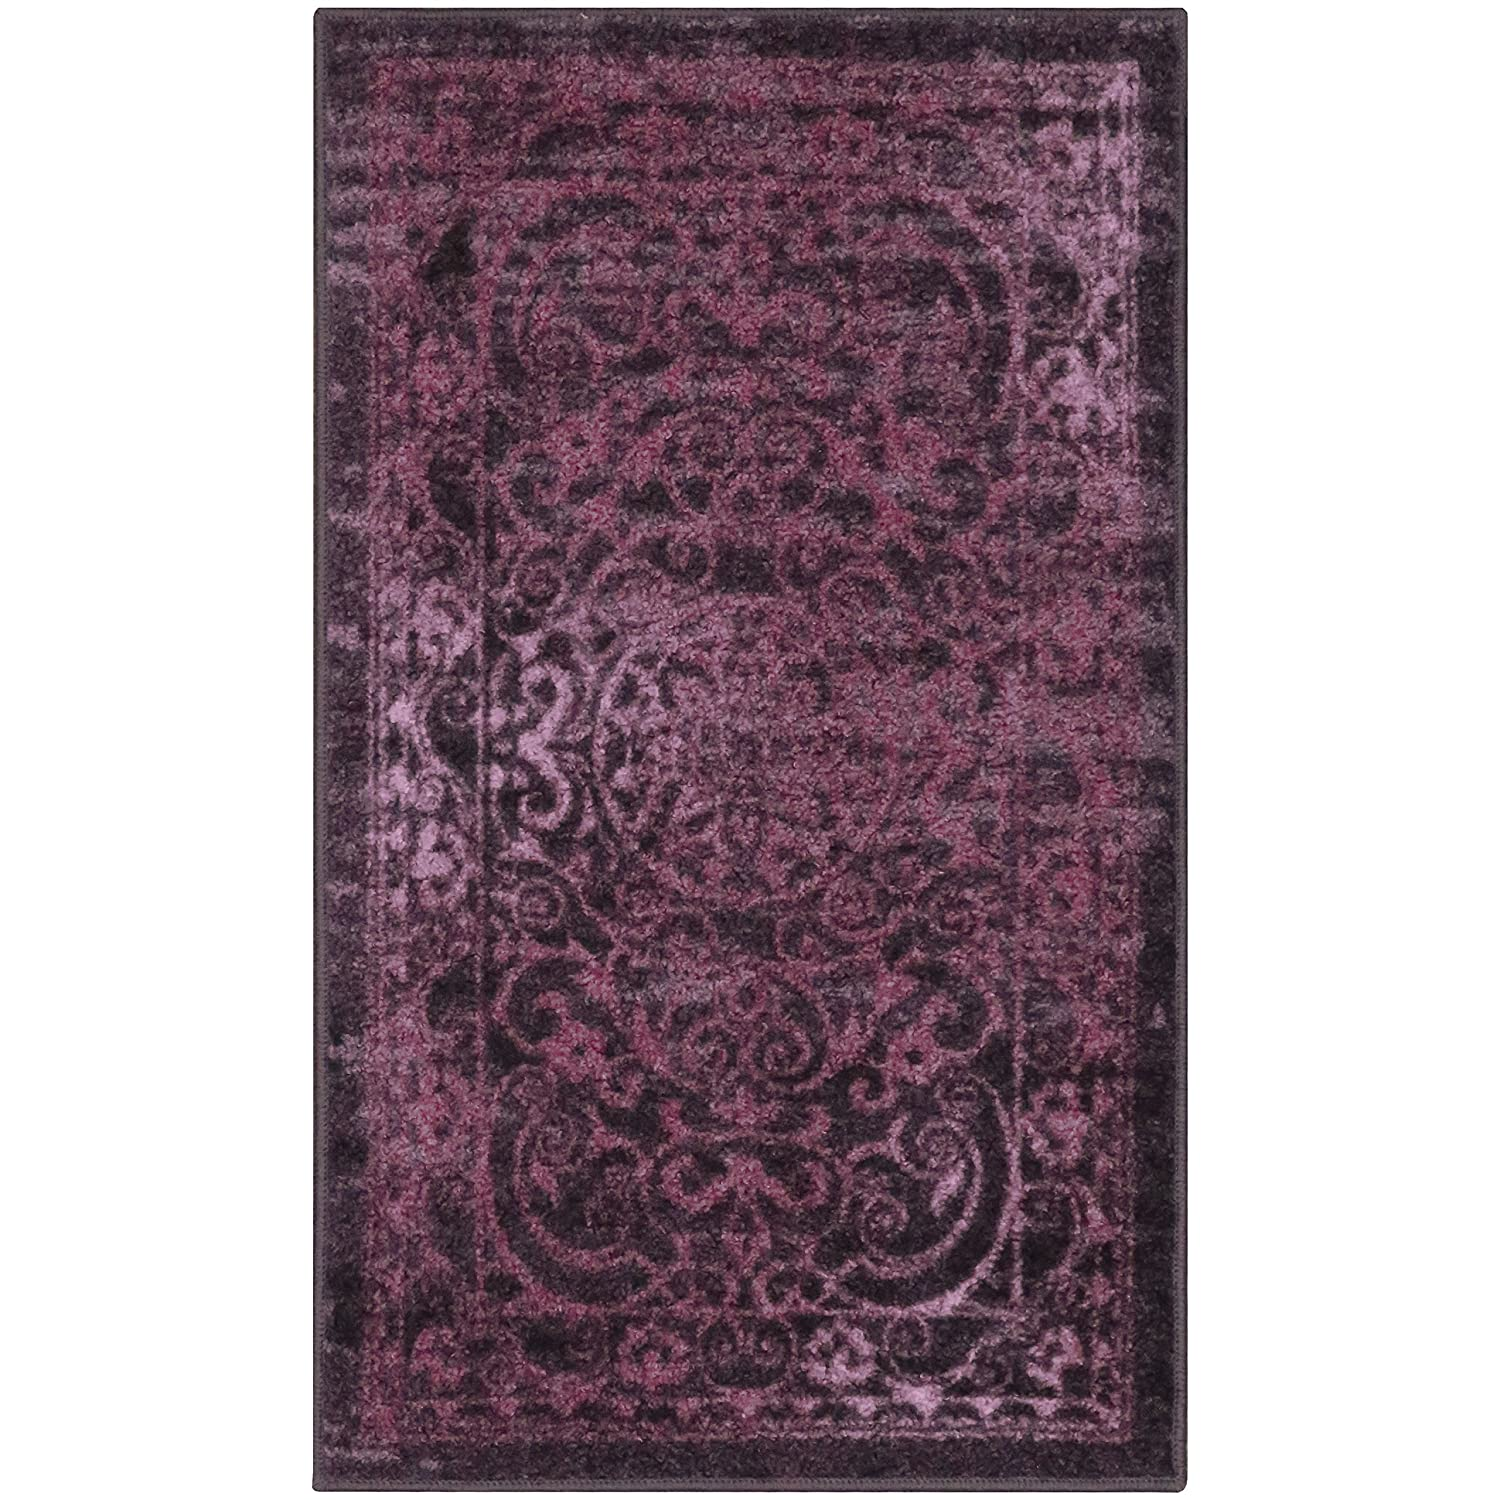 Maples Rugs Kitchen Rug - Pelham 2'6 x 3'10 Non Skid Small Accent Throw Rugs [Made in USA] for Entryway and Bedroom, Wineberry Red